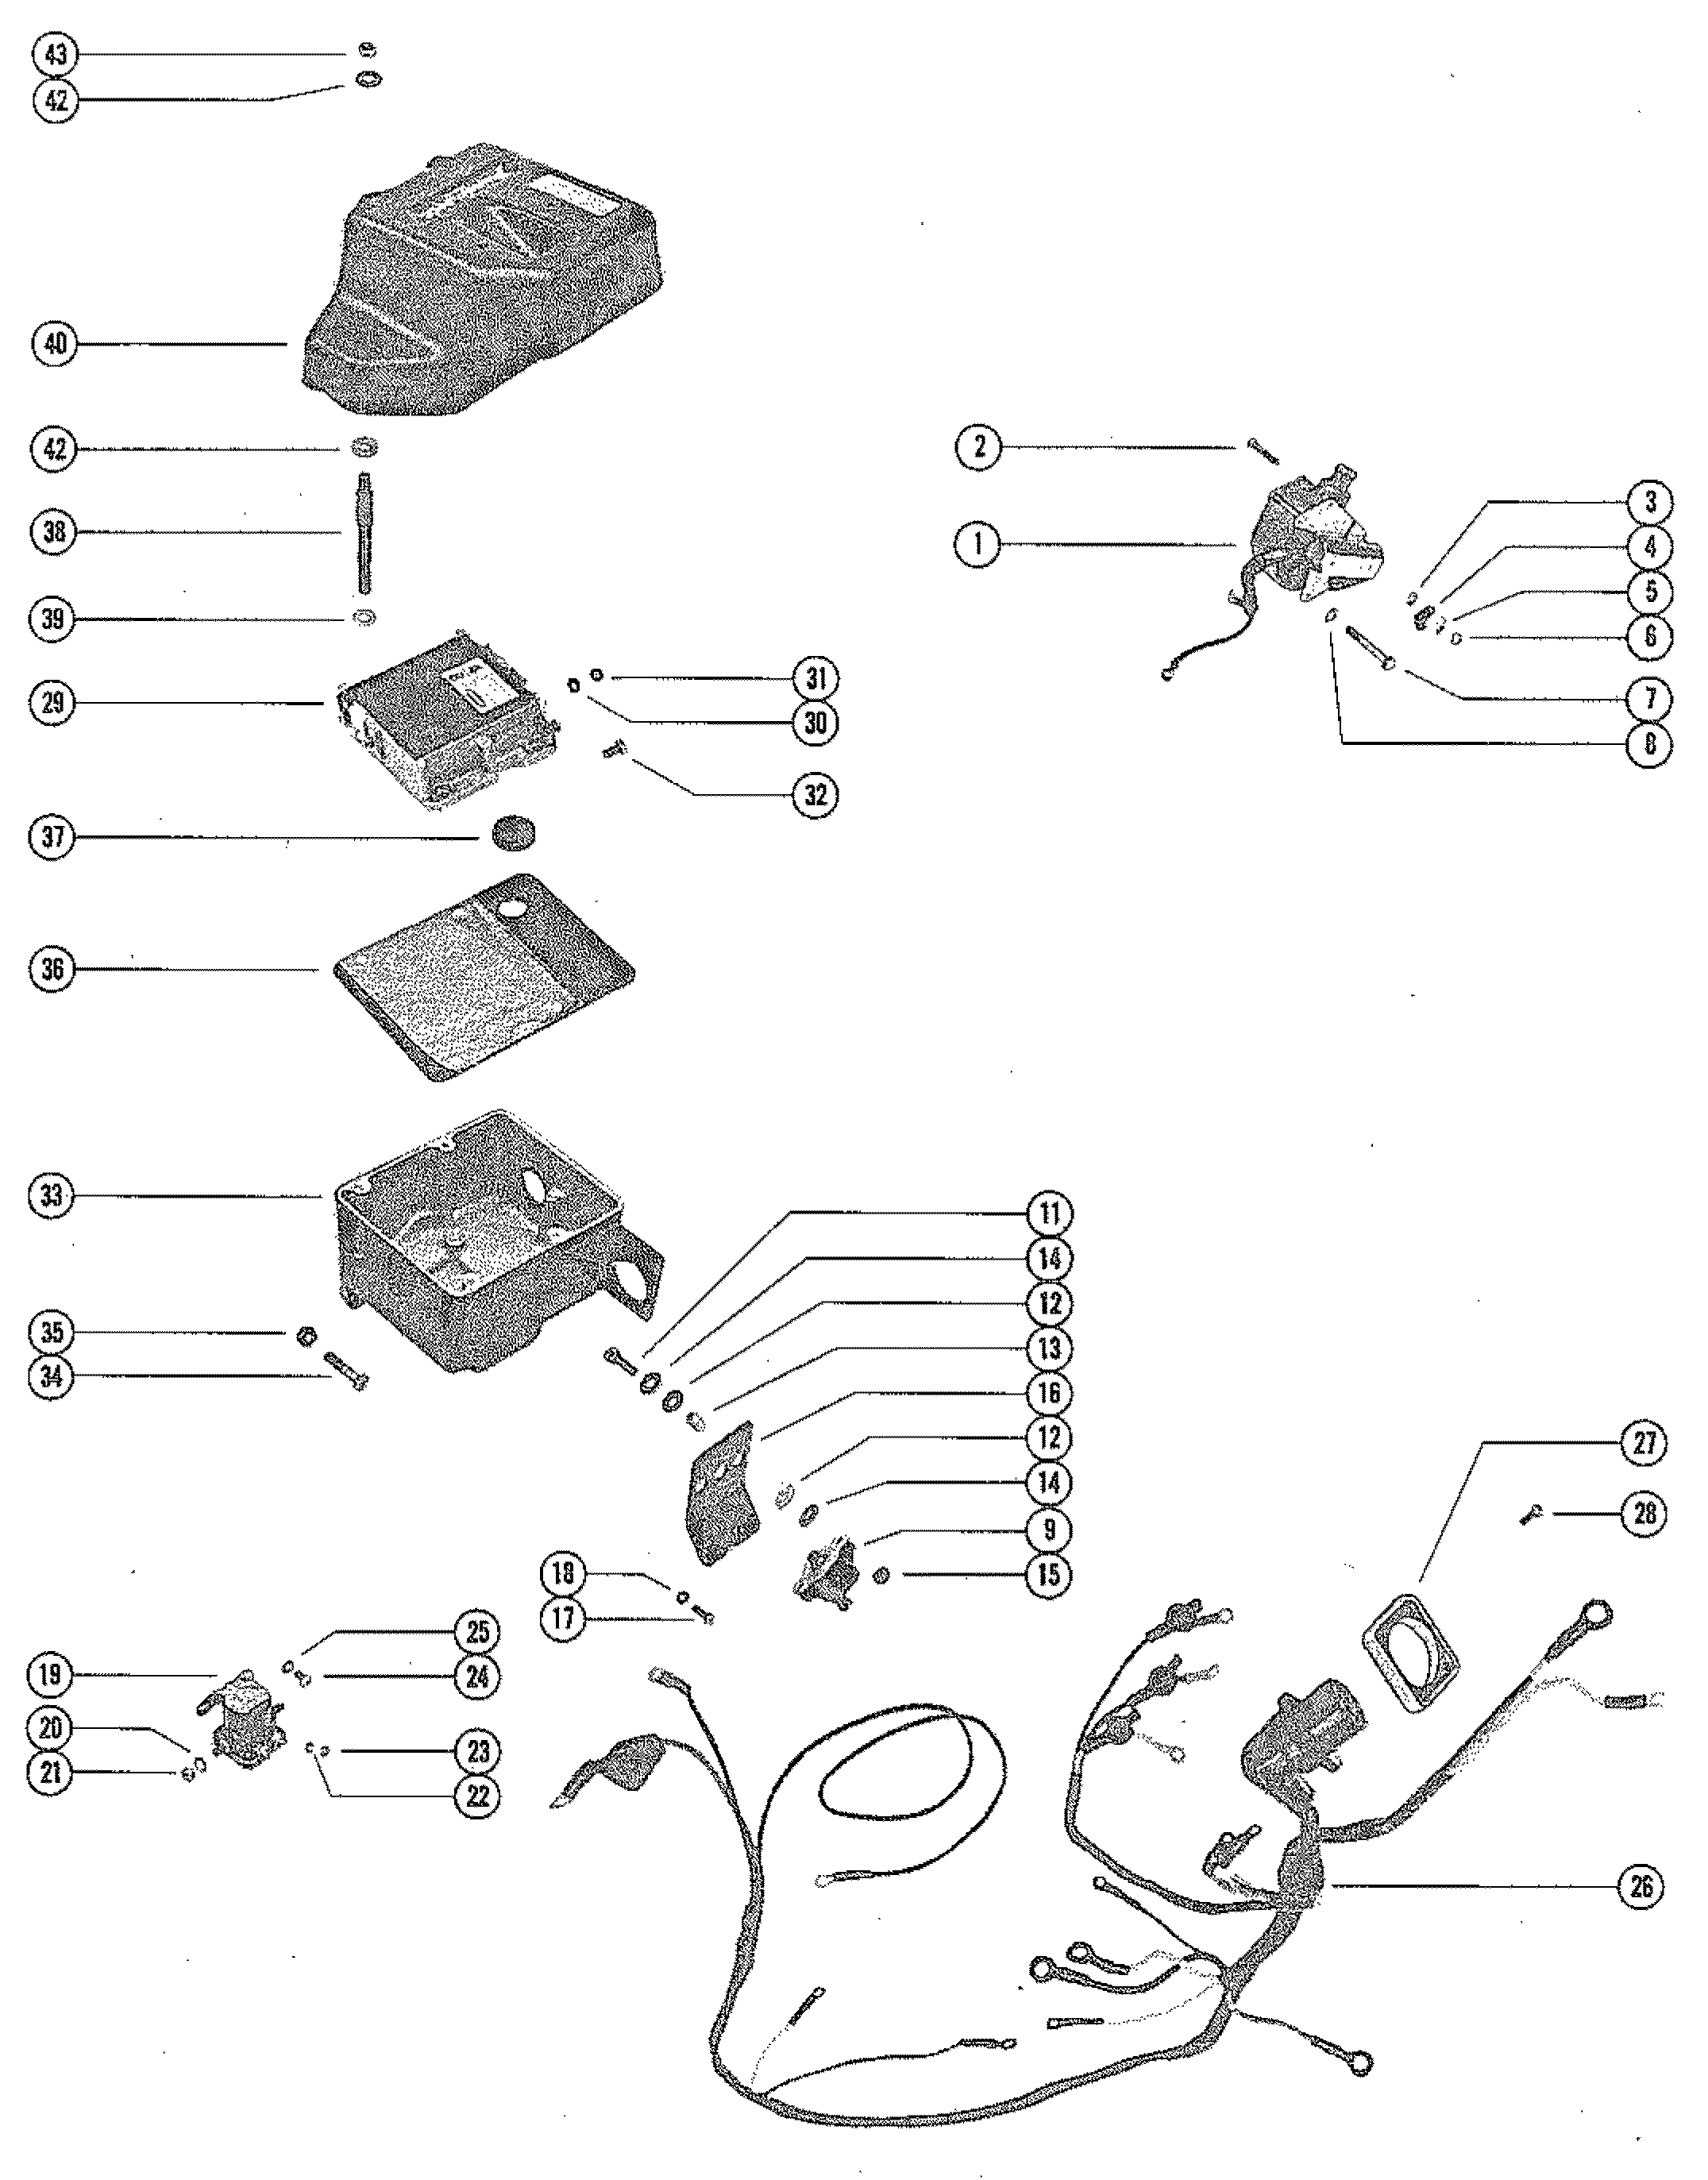 Mercruiser Ignition Coil Wiring Diagram $ Apktodownload.com